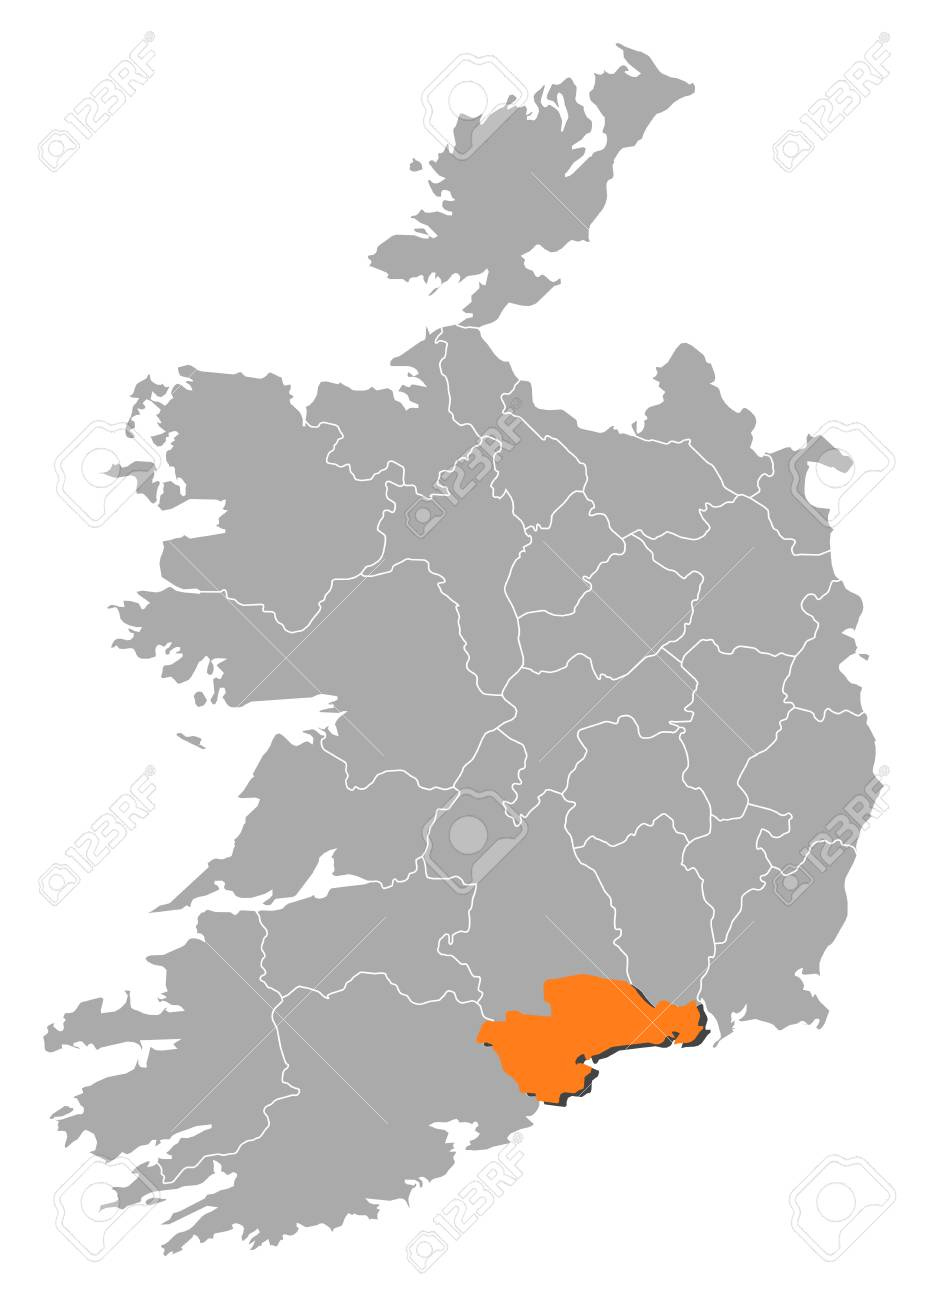 Map Of Ireland With The Provinces Waterford Is Highlighted By